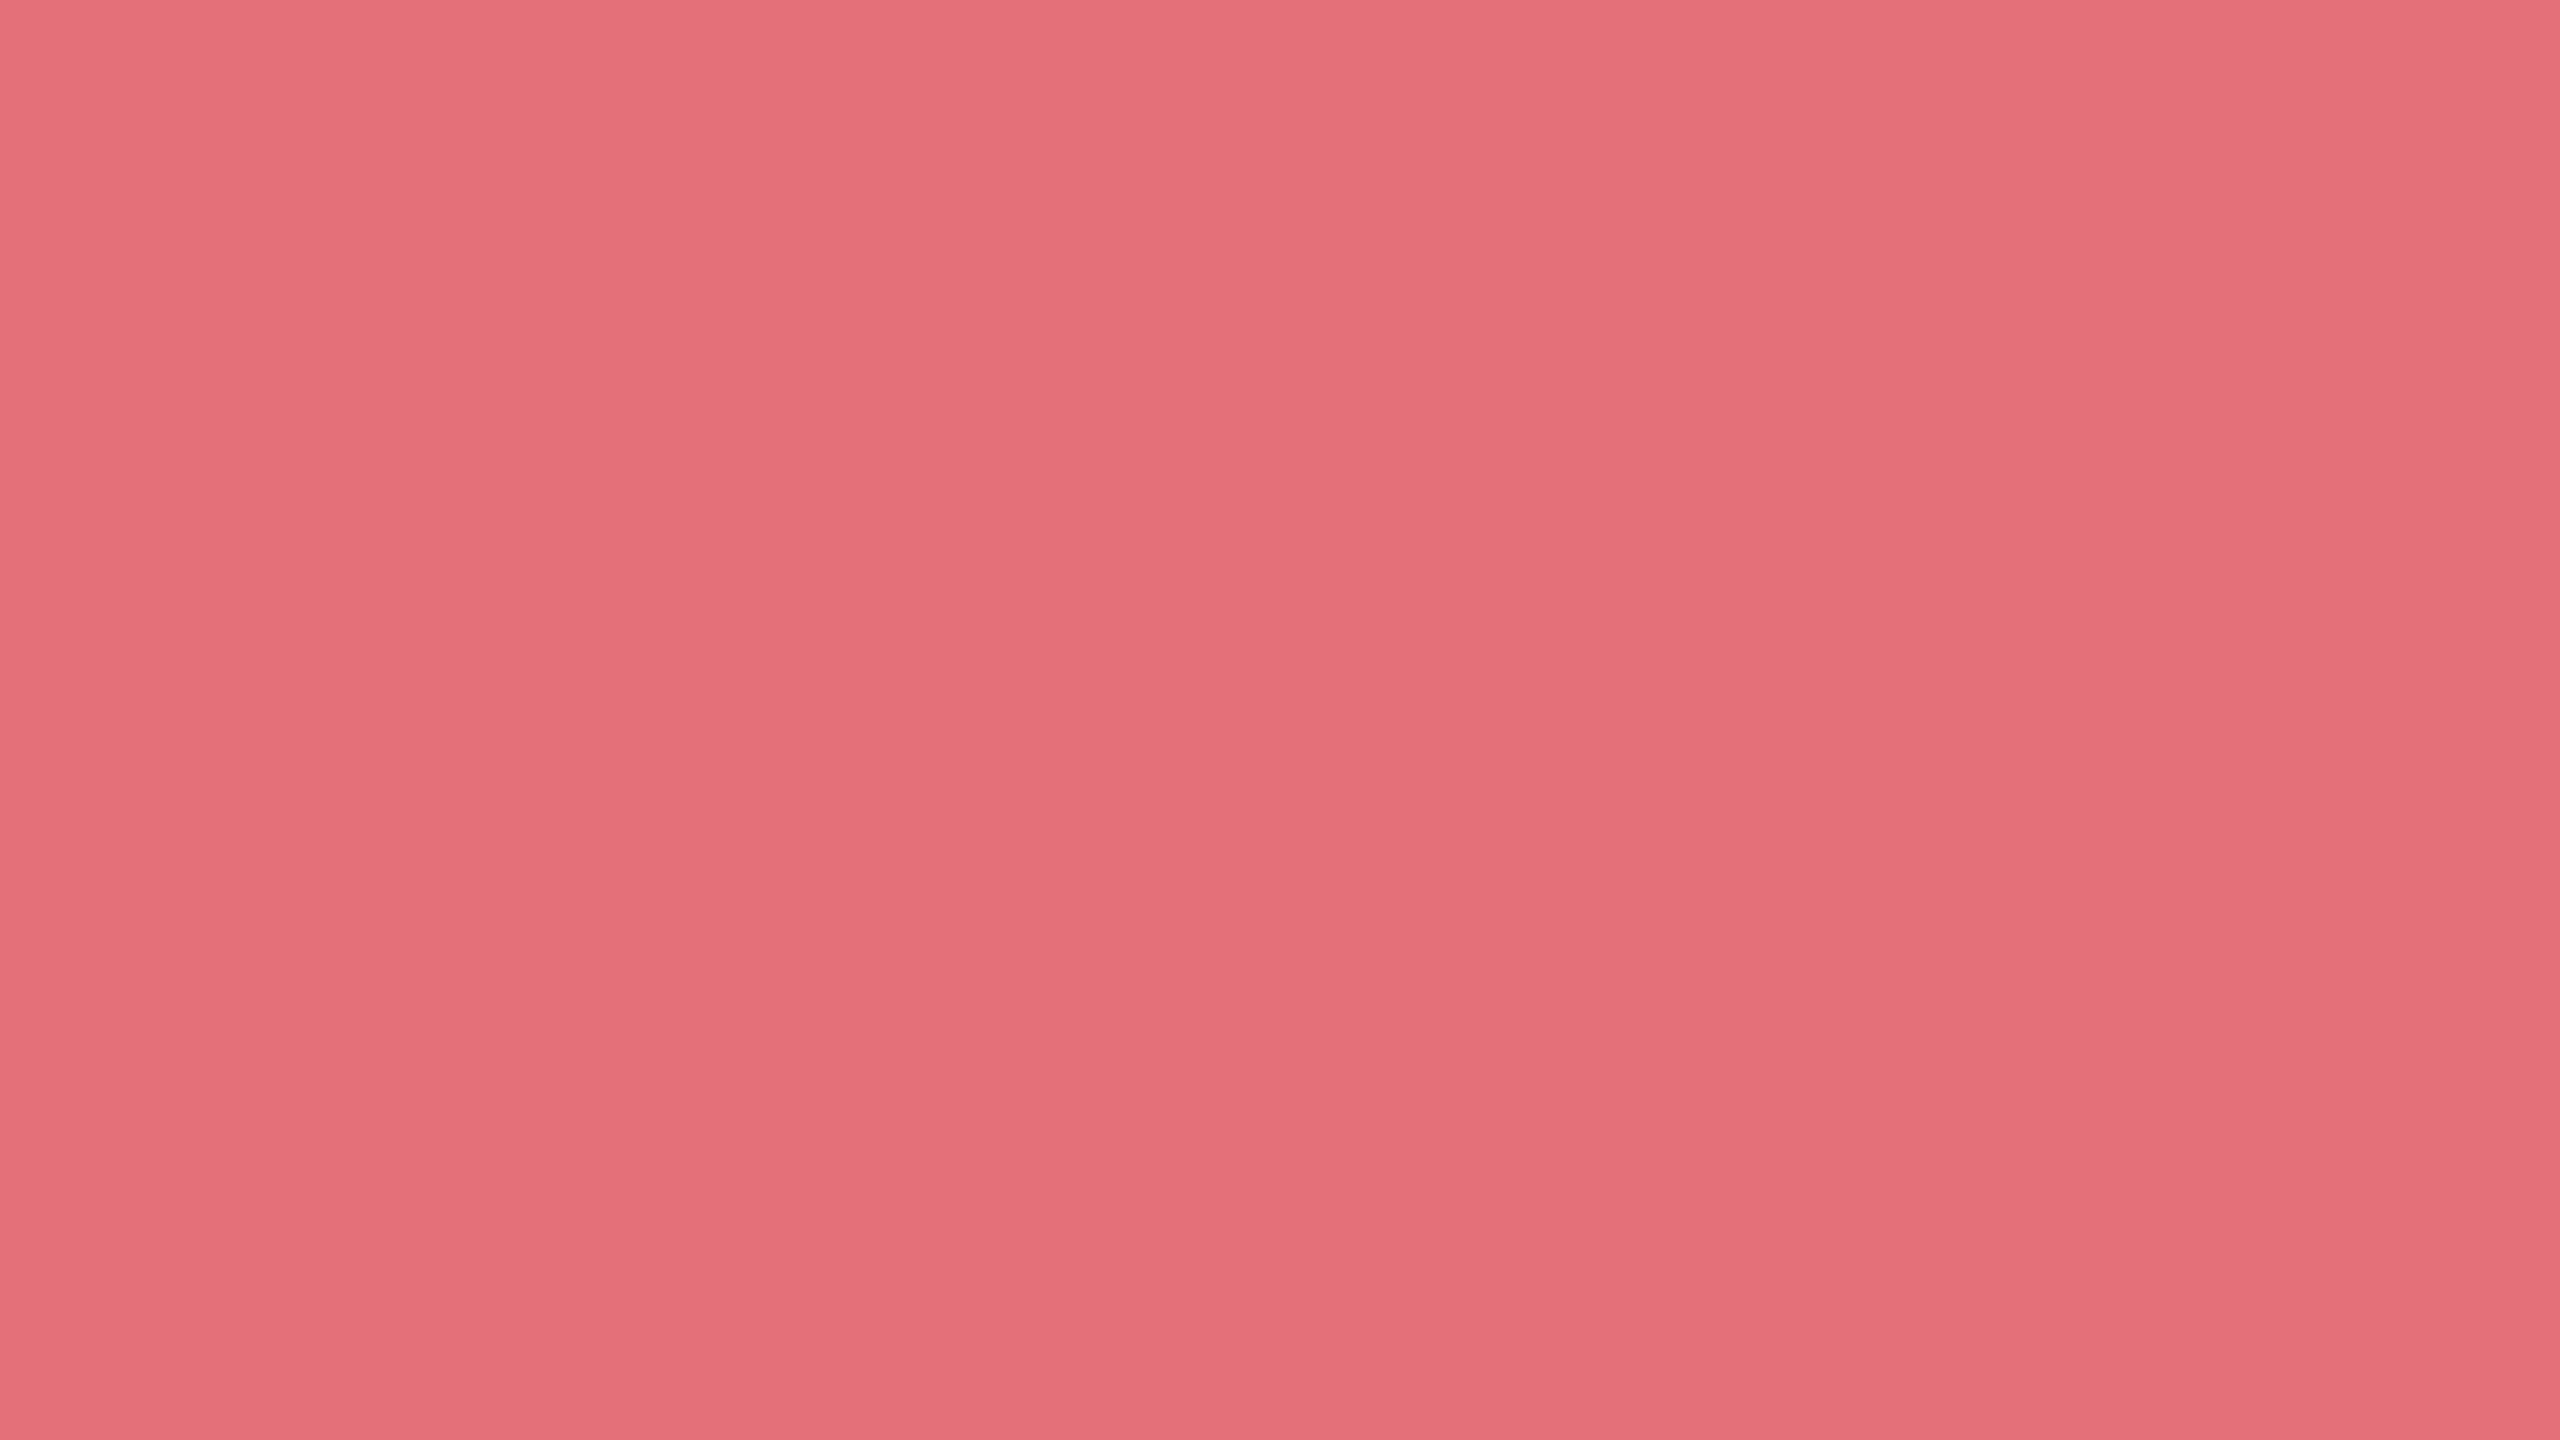 2560x1440 Tango Pink Solid Color Background